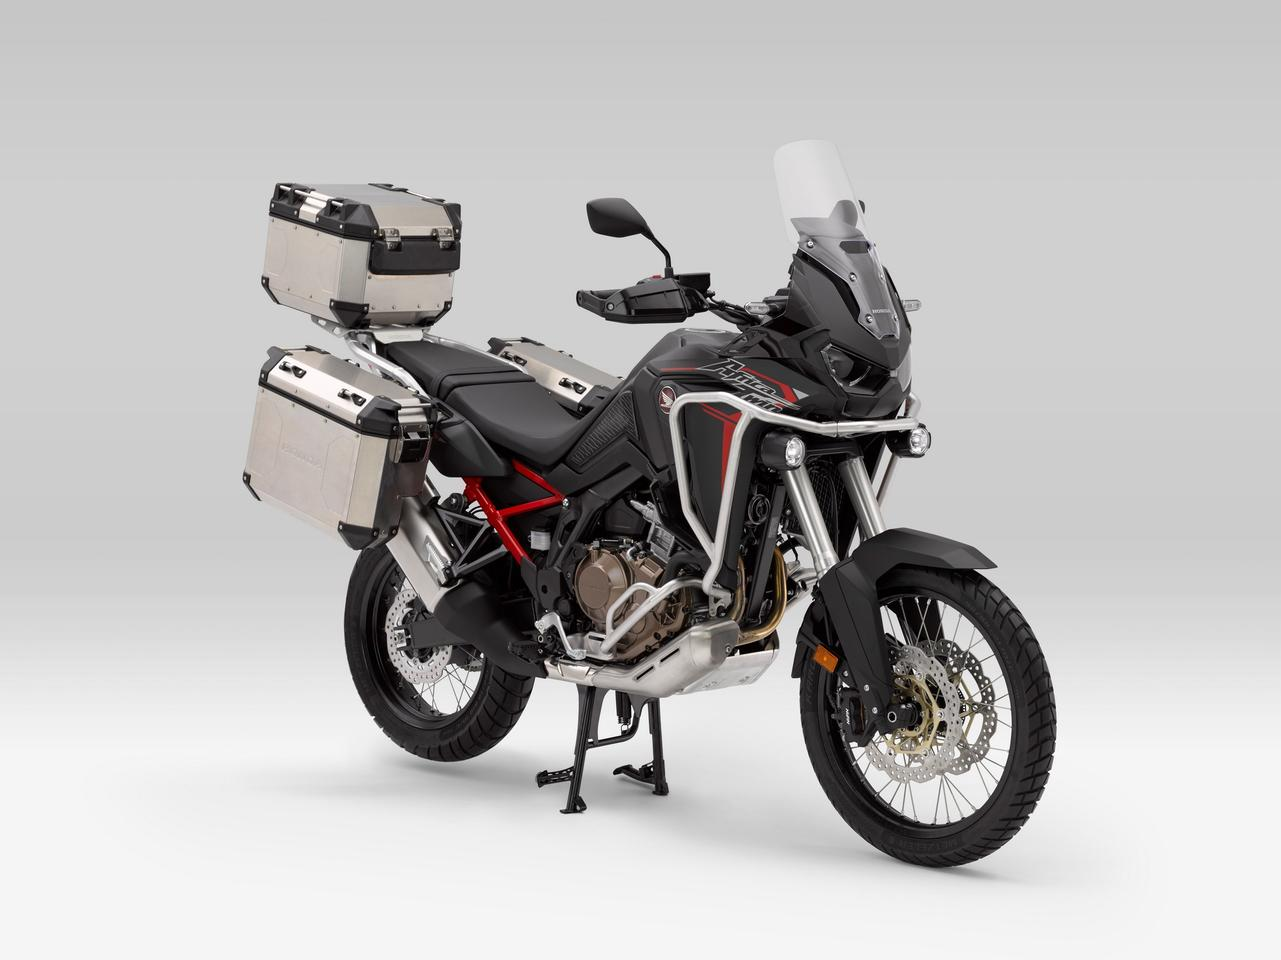 The 2020 Honda CRF1100L Africa Twin loaded with official accessories